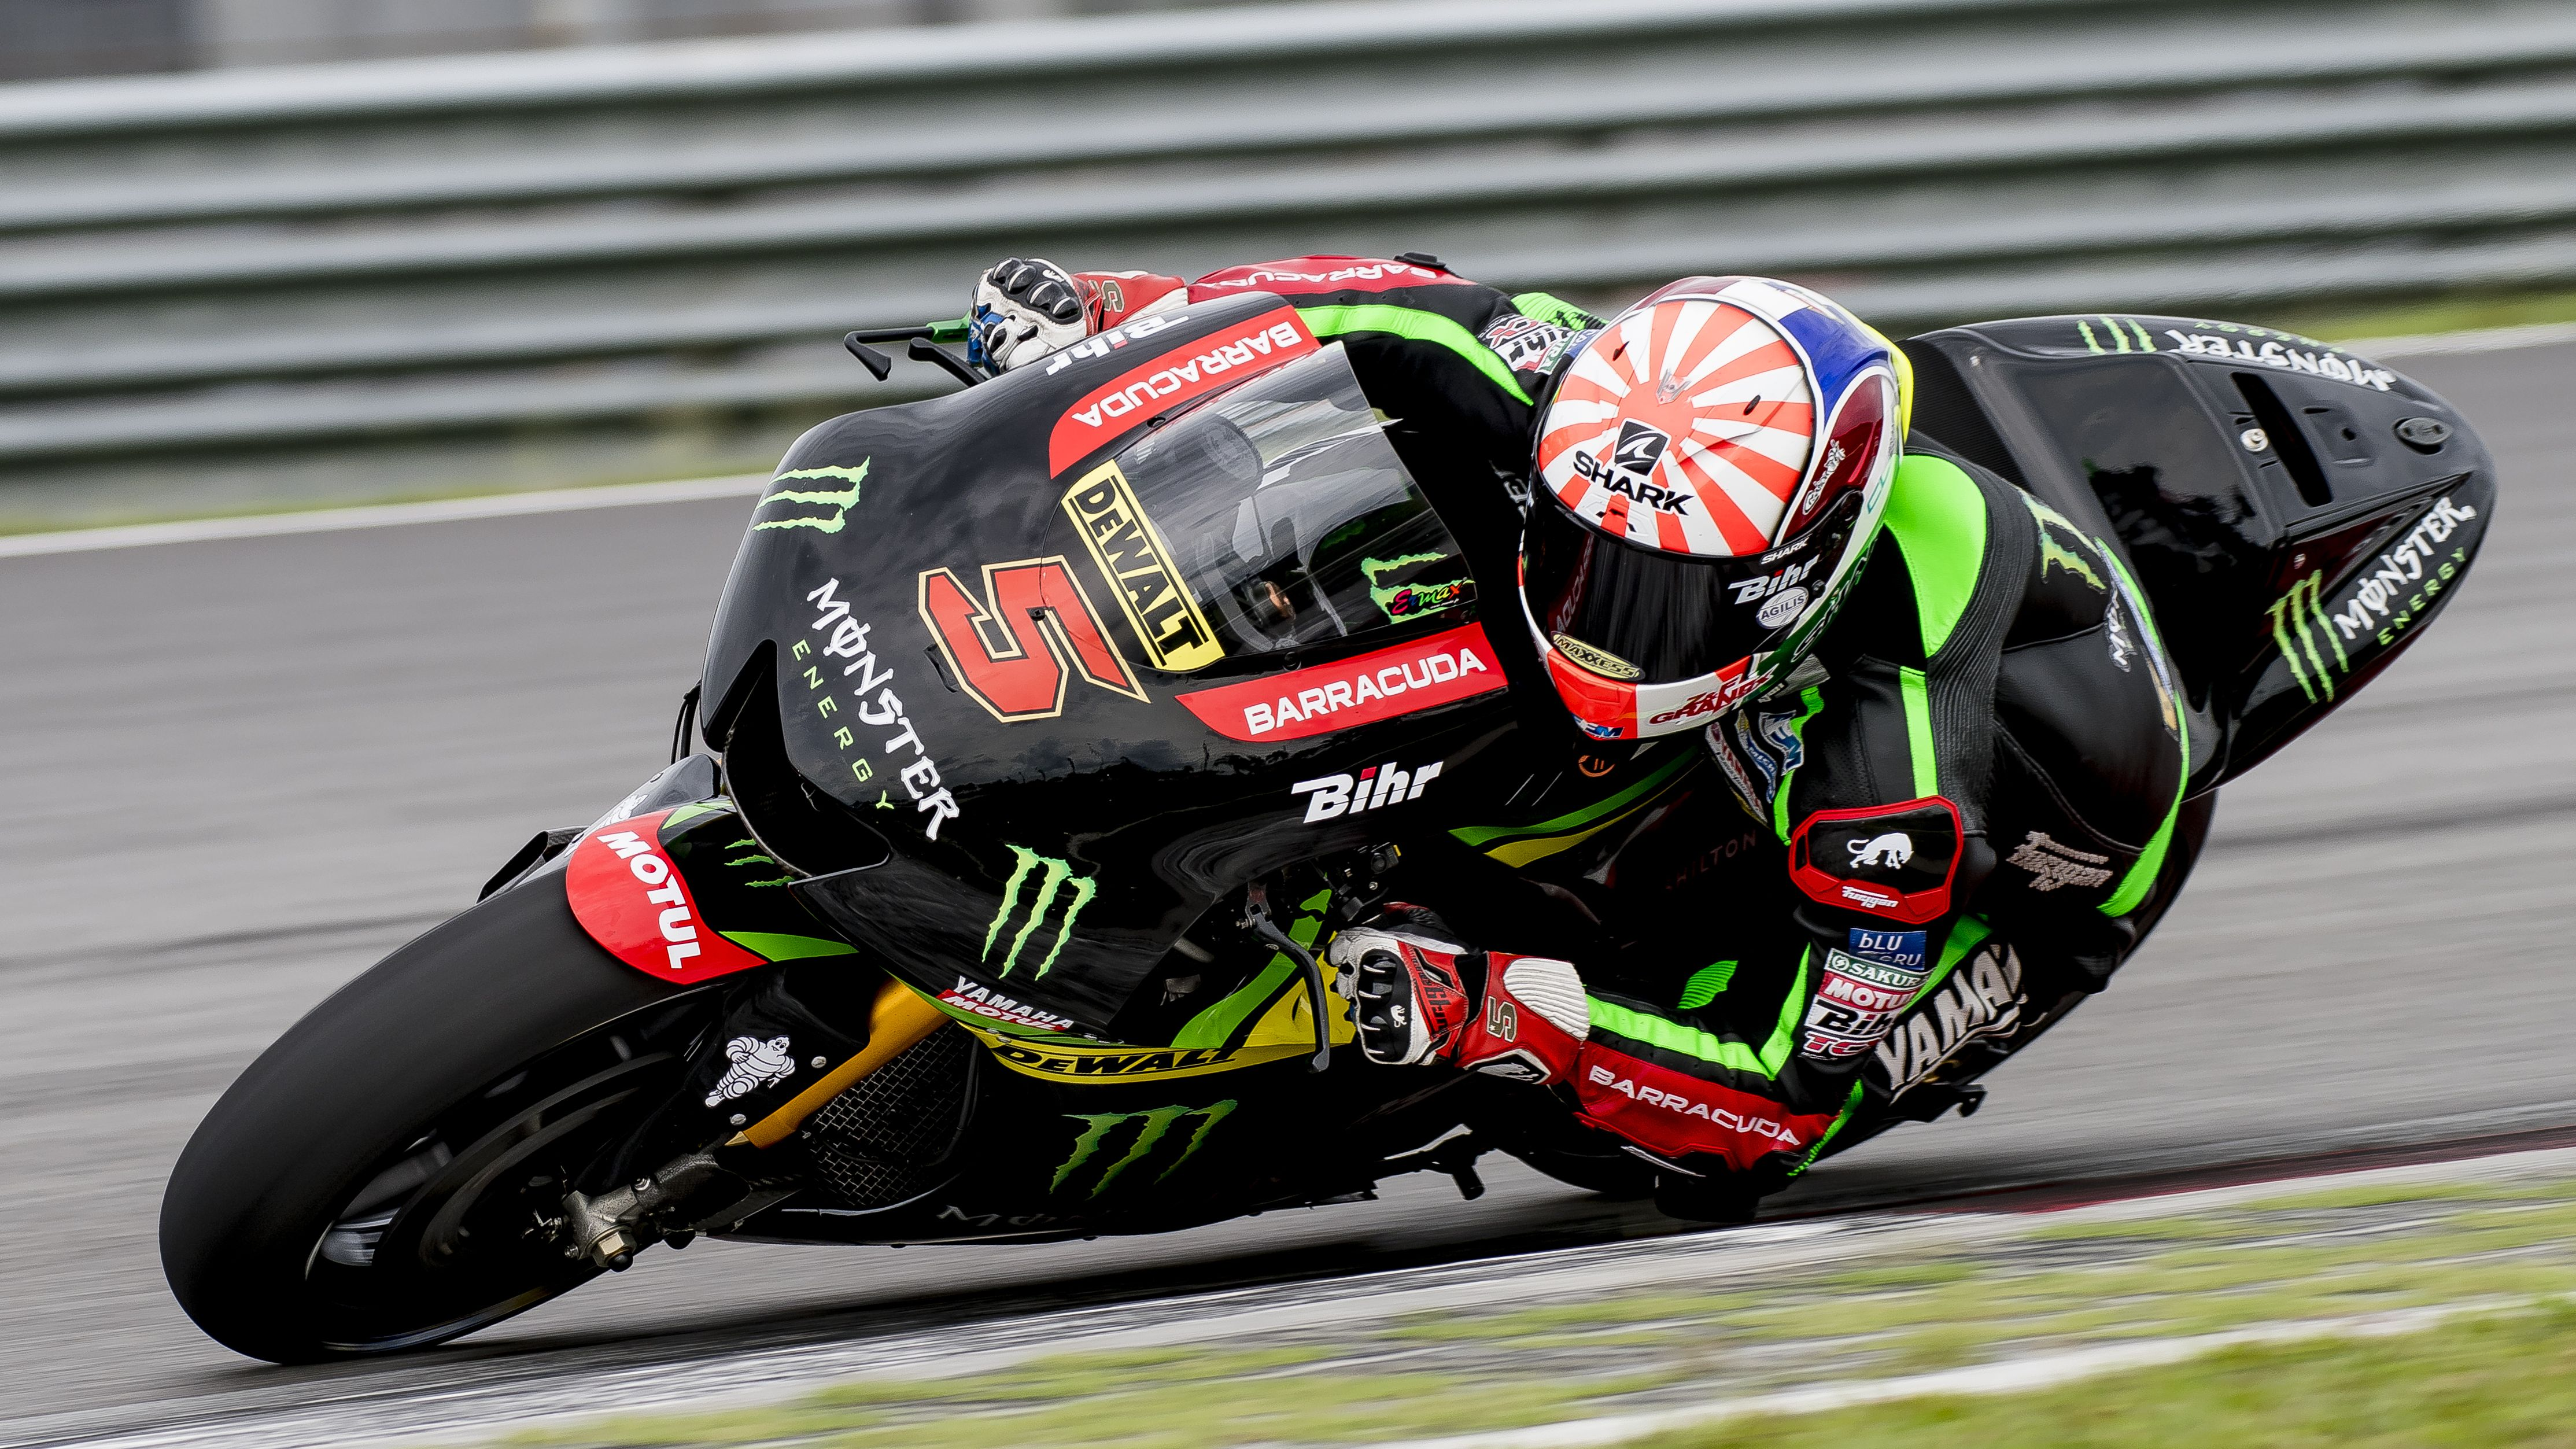 Tech3 duo outline their intent for 2017 with strong showings on day 2 in Sepang